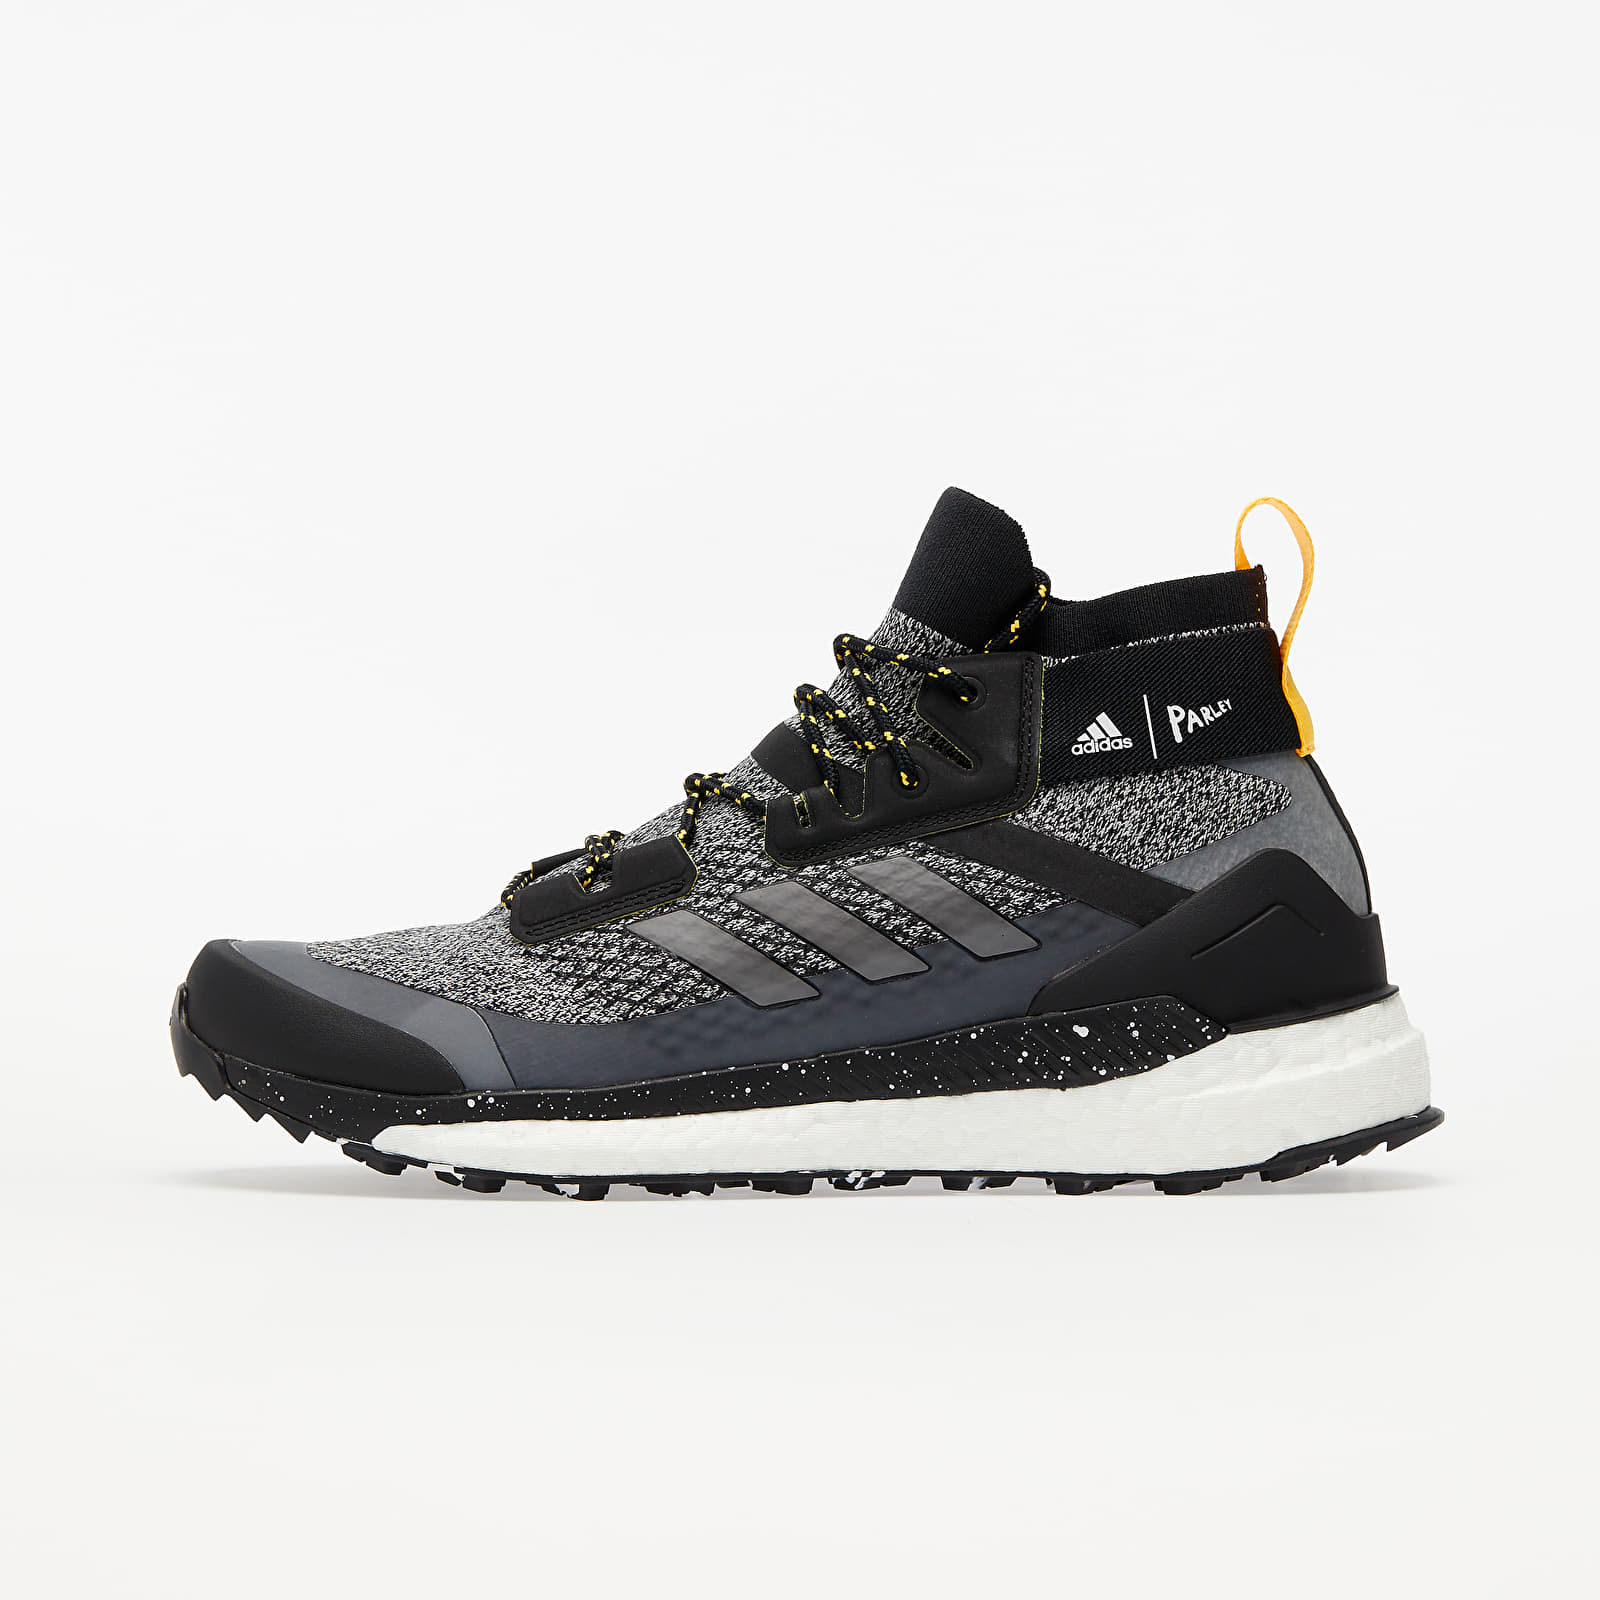 Men's shoes adidas Terrex Free Hiker Parley Core Black/ Crystal White/ Solid Gold